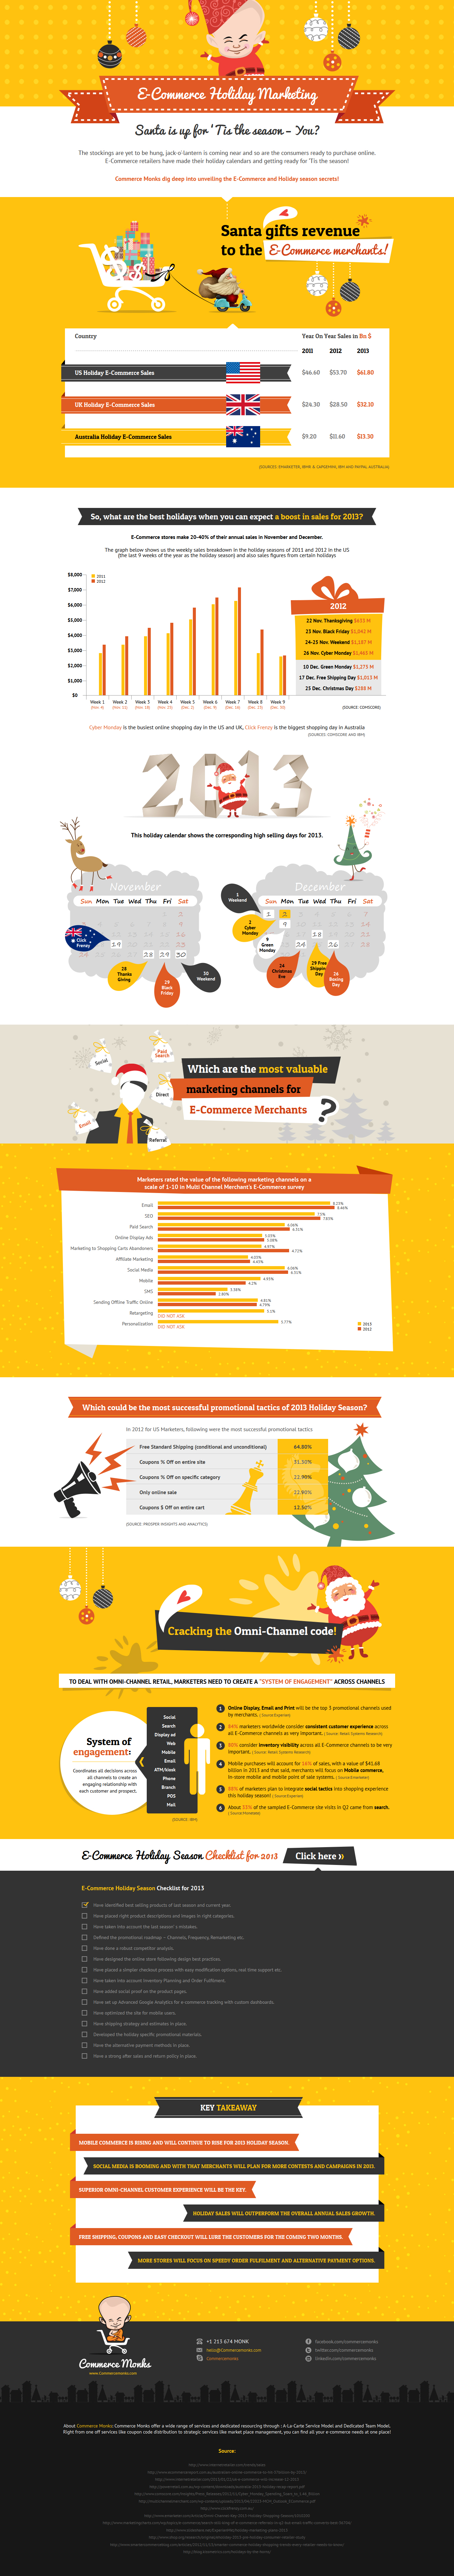 Ecommerce Holiday Marketing Infographic